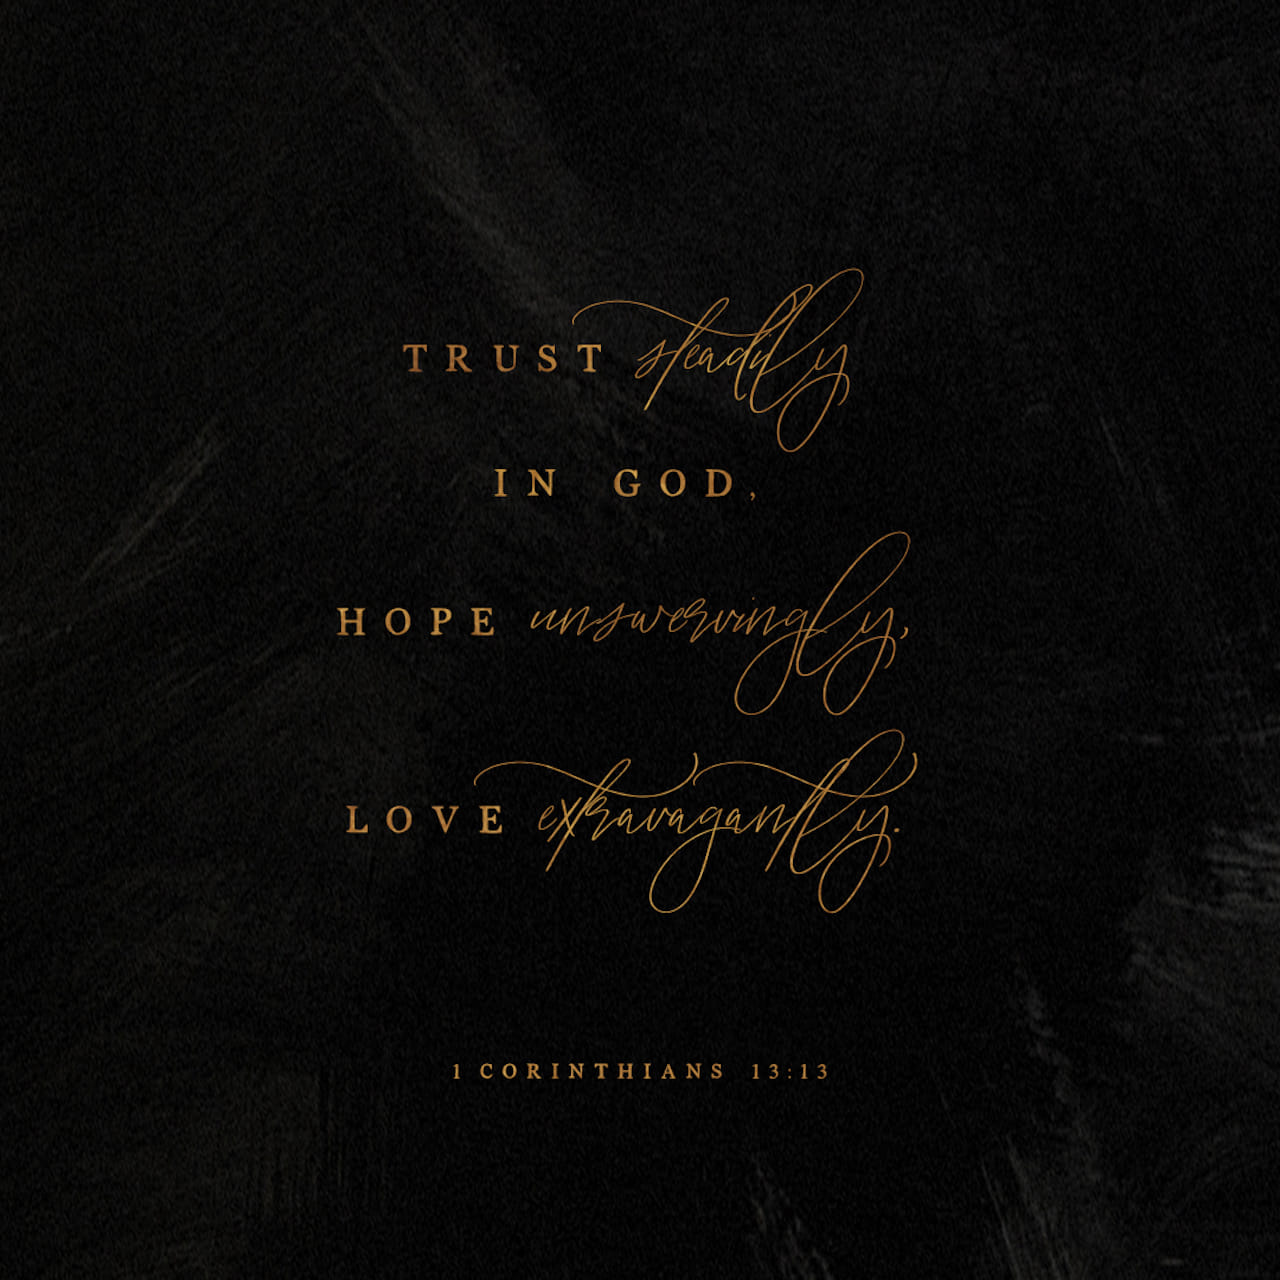 1 Corinthians 13:13 So now faith, hope, and love abide, these three; but the greatest of these is love. | English Standard Version (ESV) | Download The Bible App Now